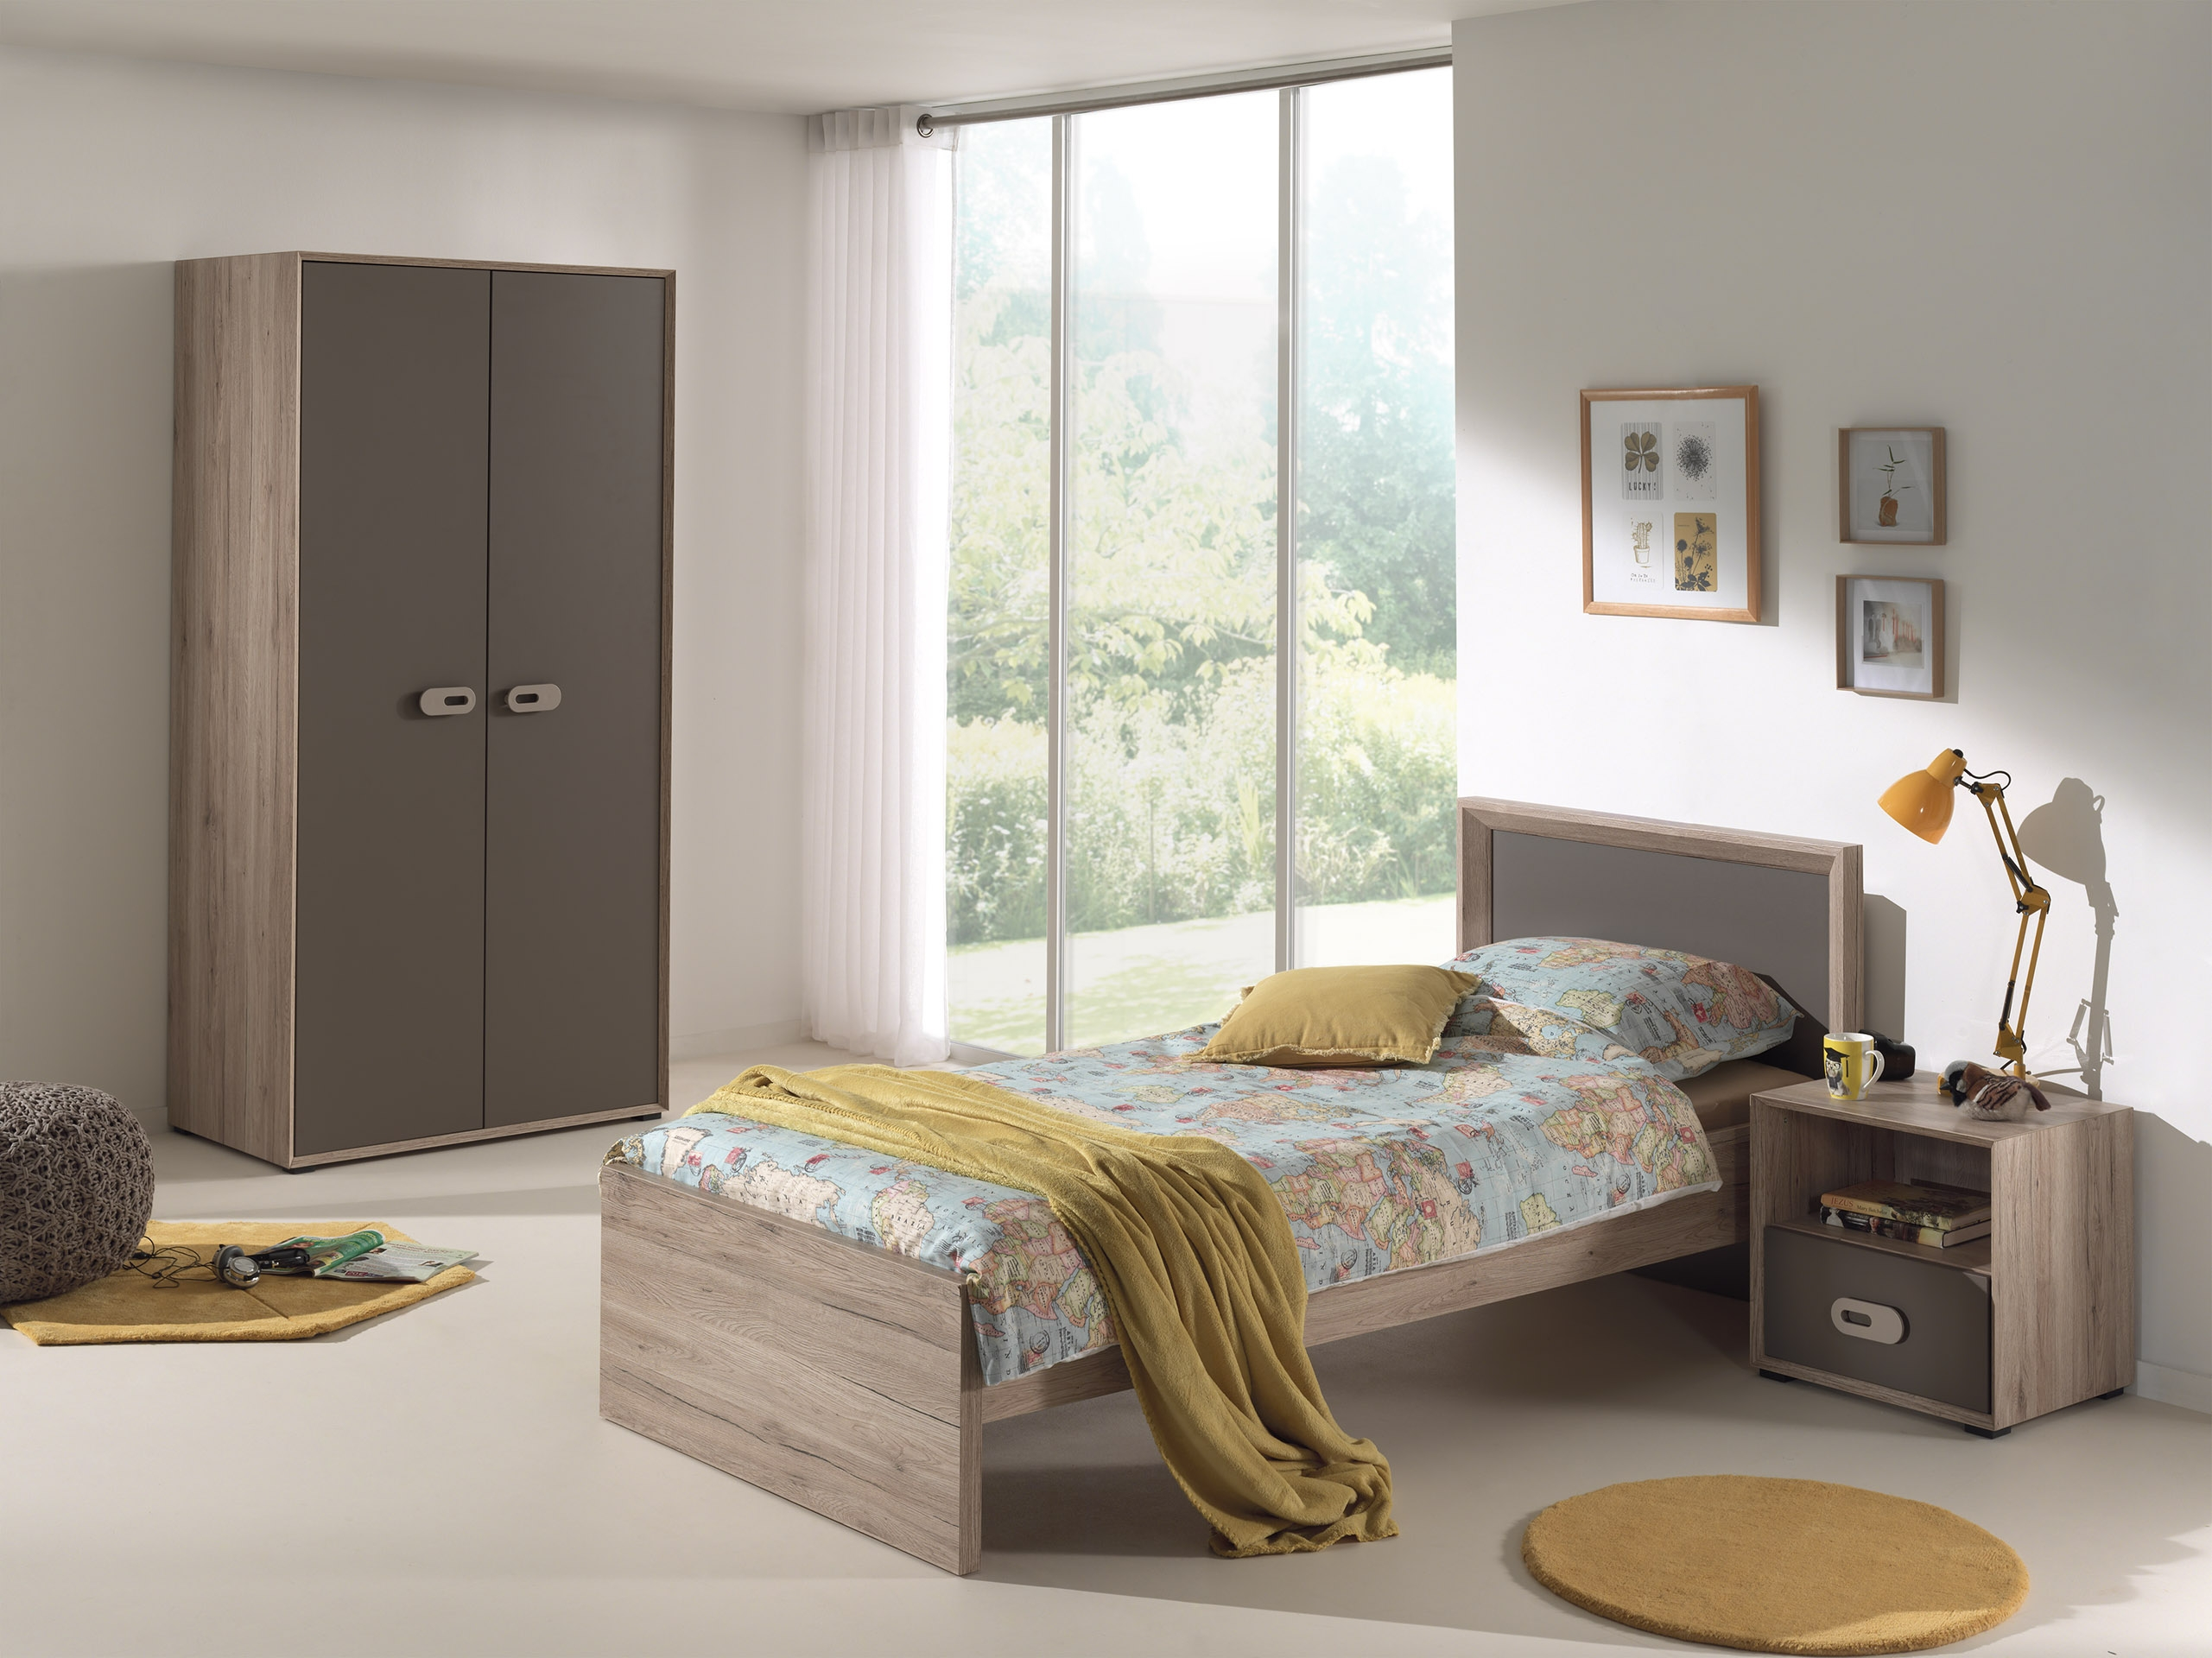 chambre 3 pi ces bois naturel et marron foresta. Black Bedroom Furniture Sets. Home Design Ideas